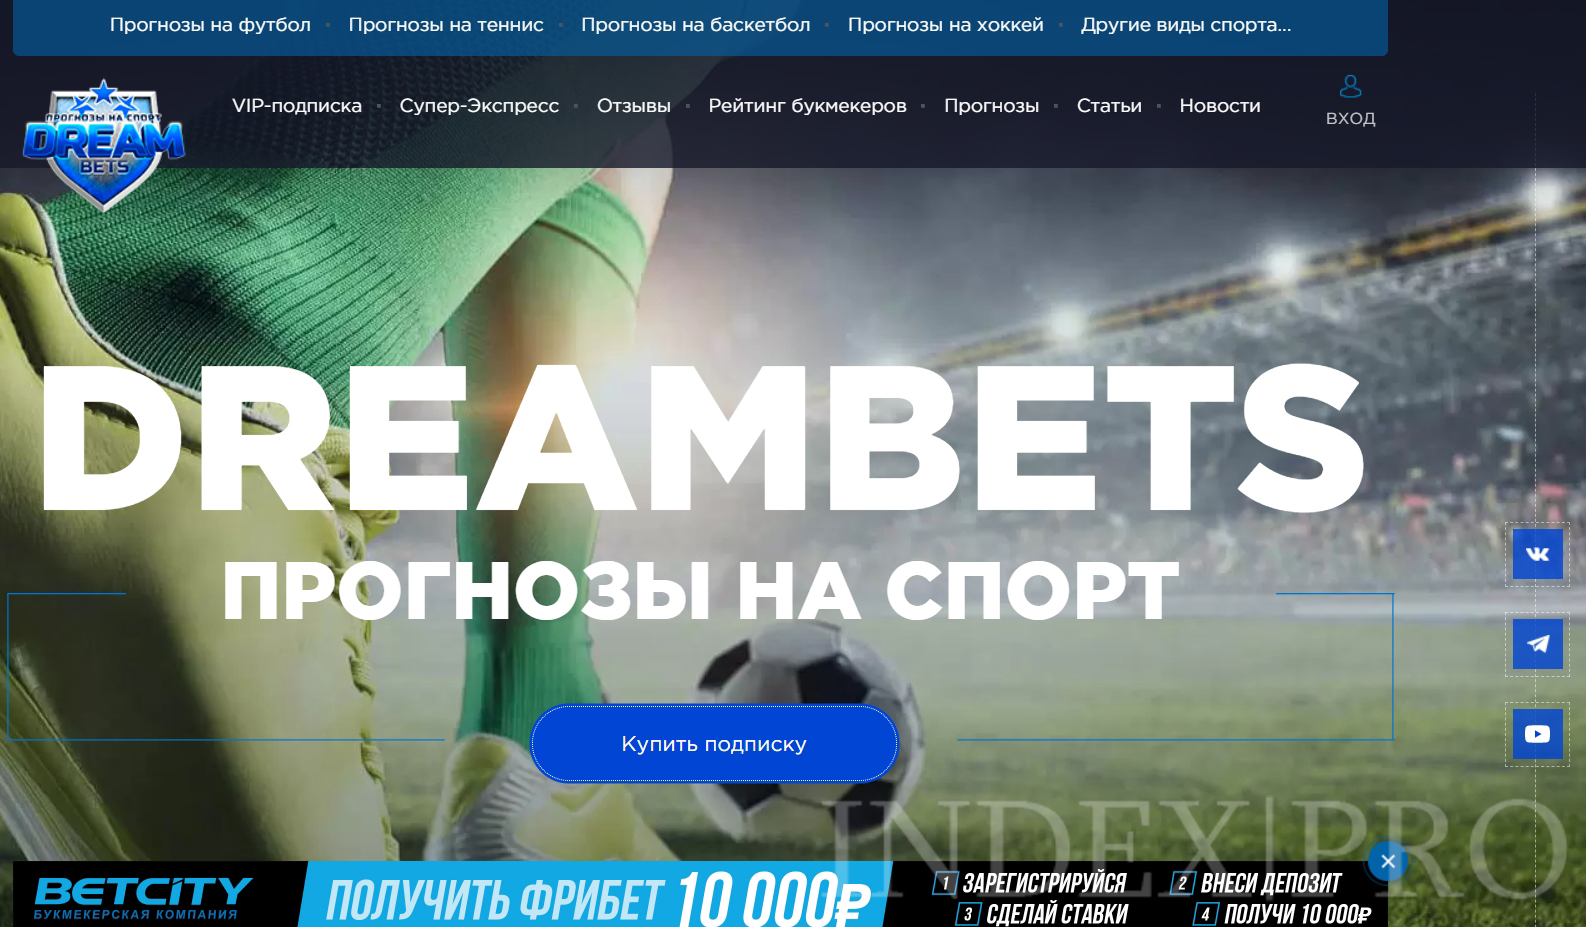 DreamBets